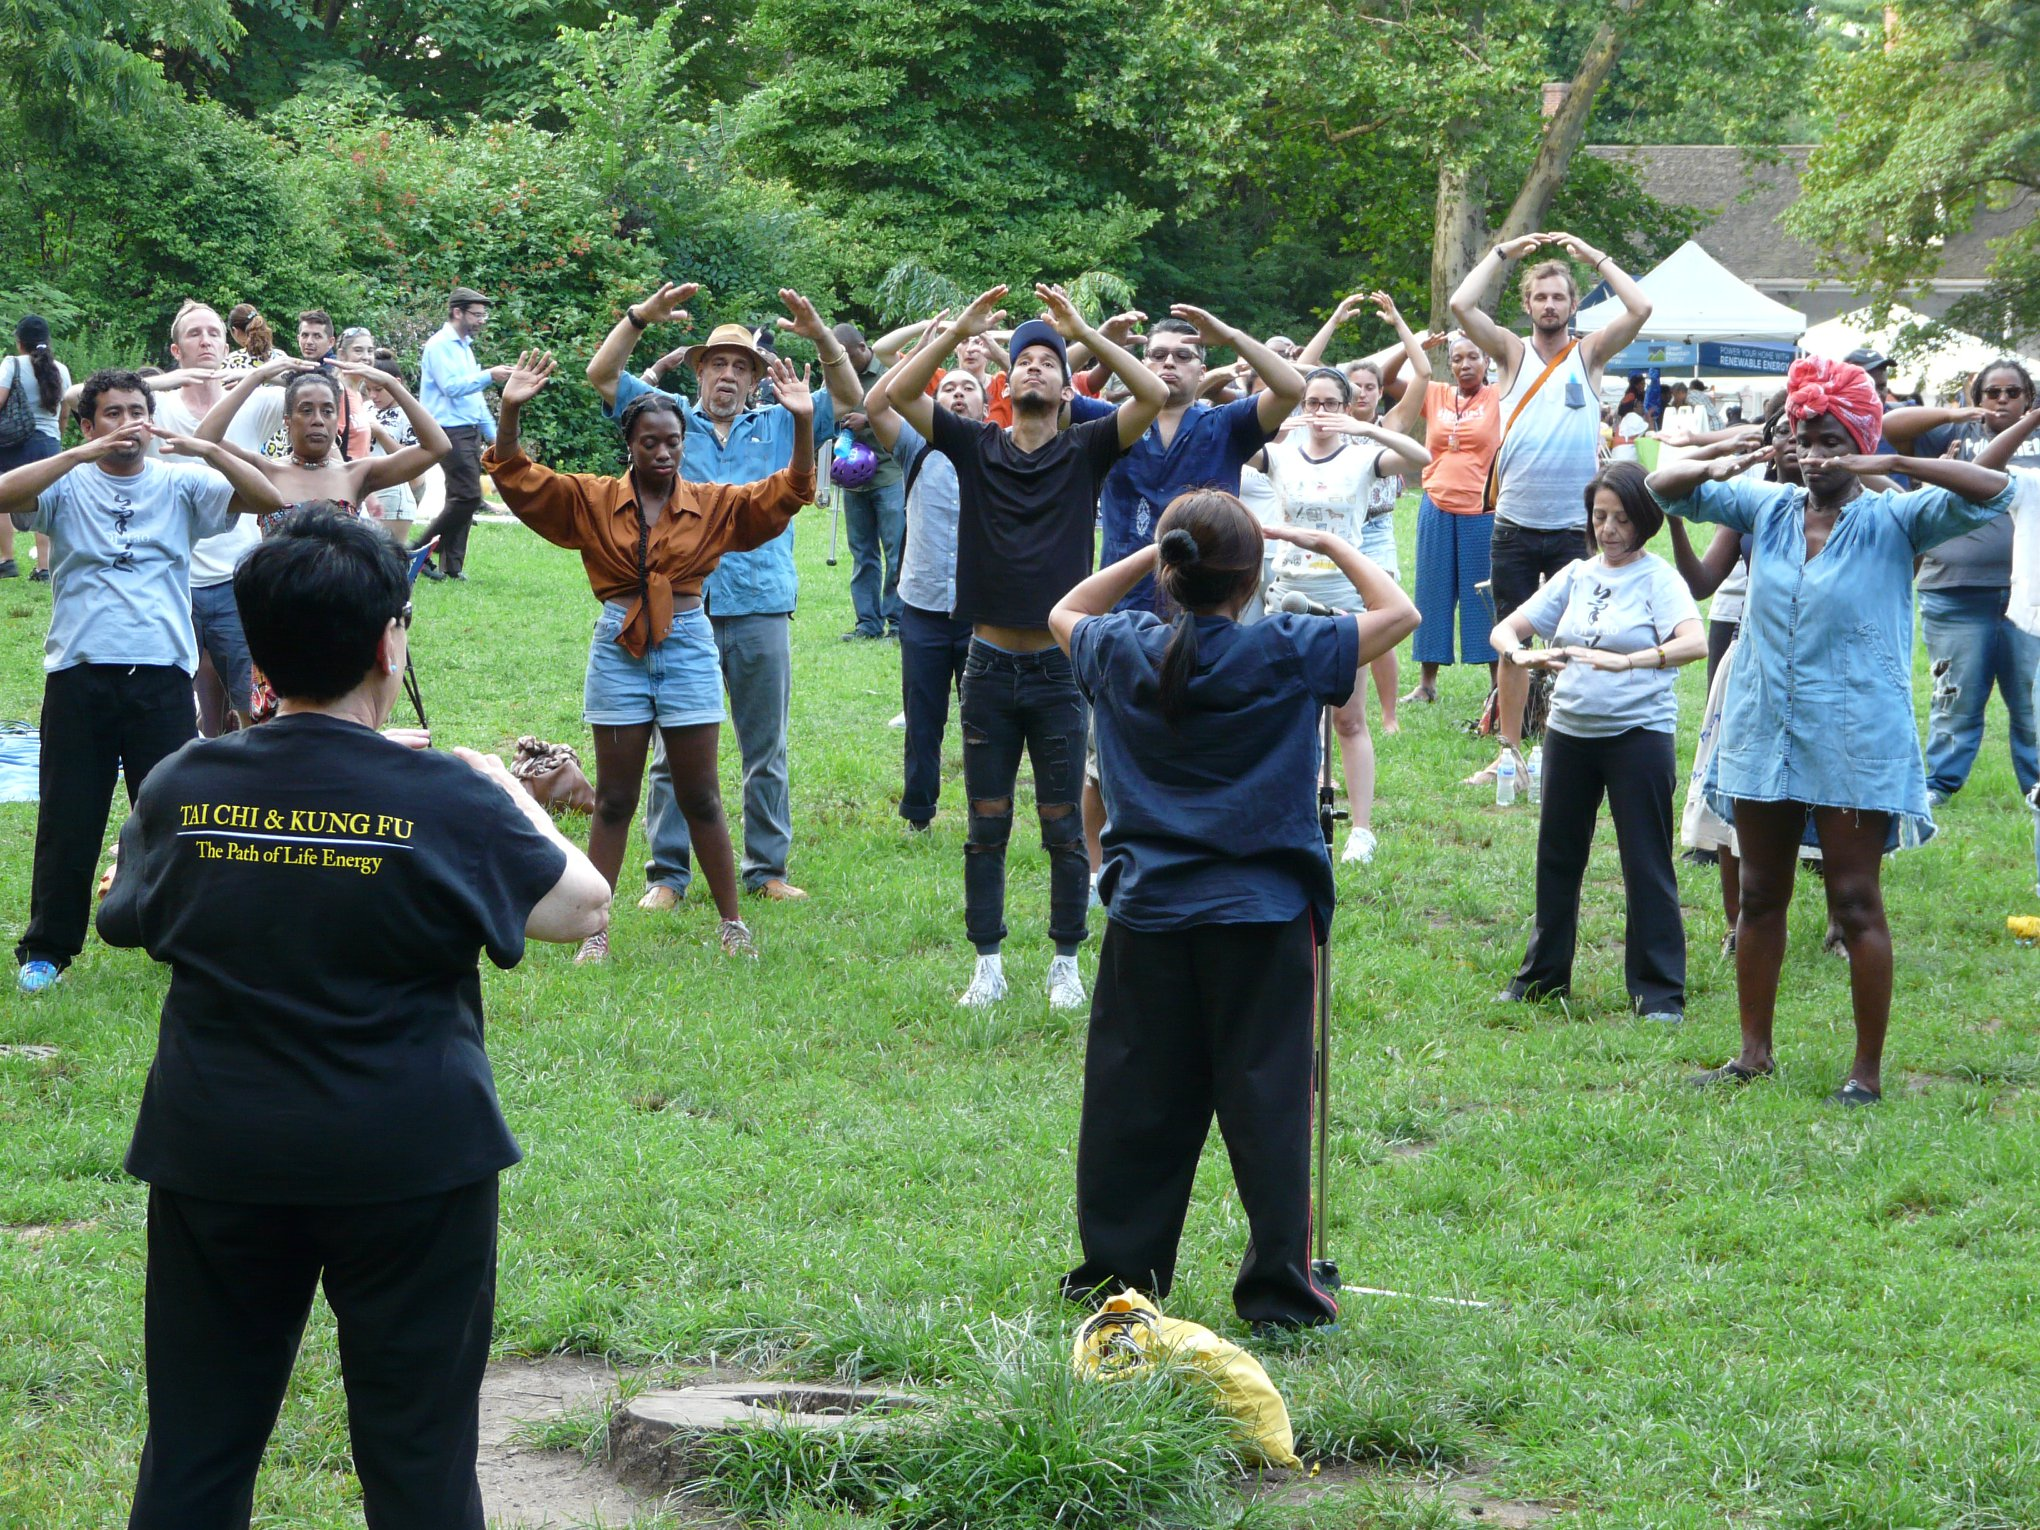 Tai Chi Workshop with Qi Tao - Brooklyn Roots Festival 2018 at Prospect Park